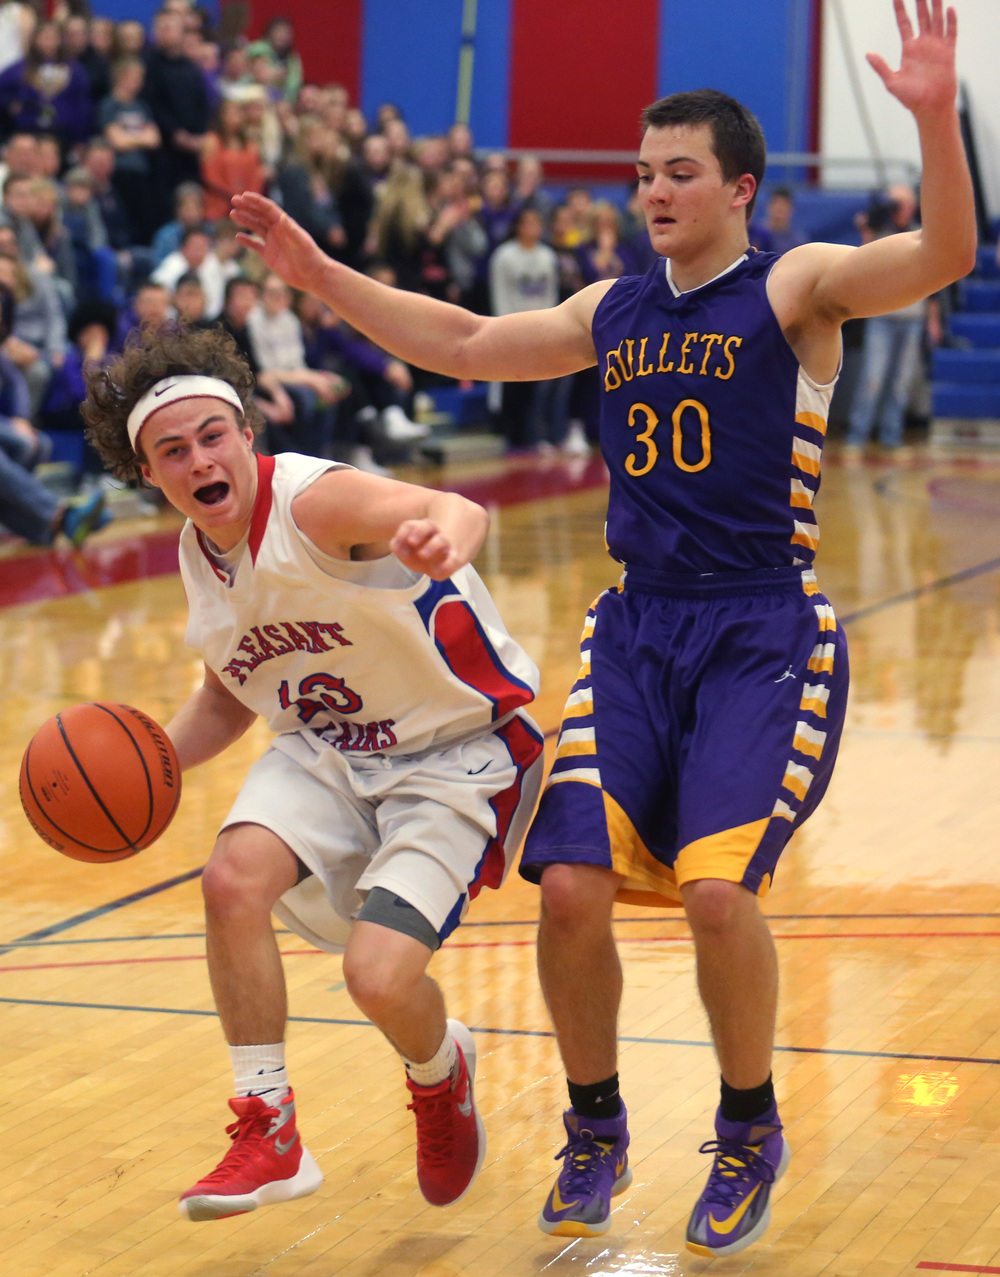 Plains player Cole Greer looks to put up two late in the game while defended by Williamsville player Jon Beal. David Spencer/The State Journal Register